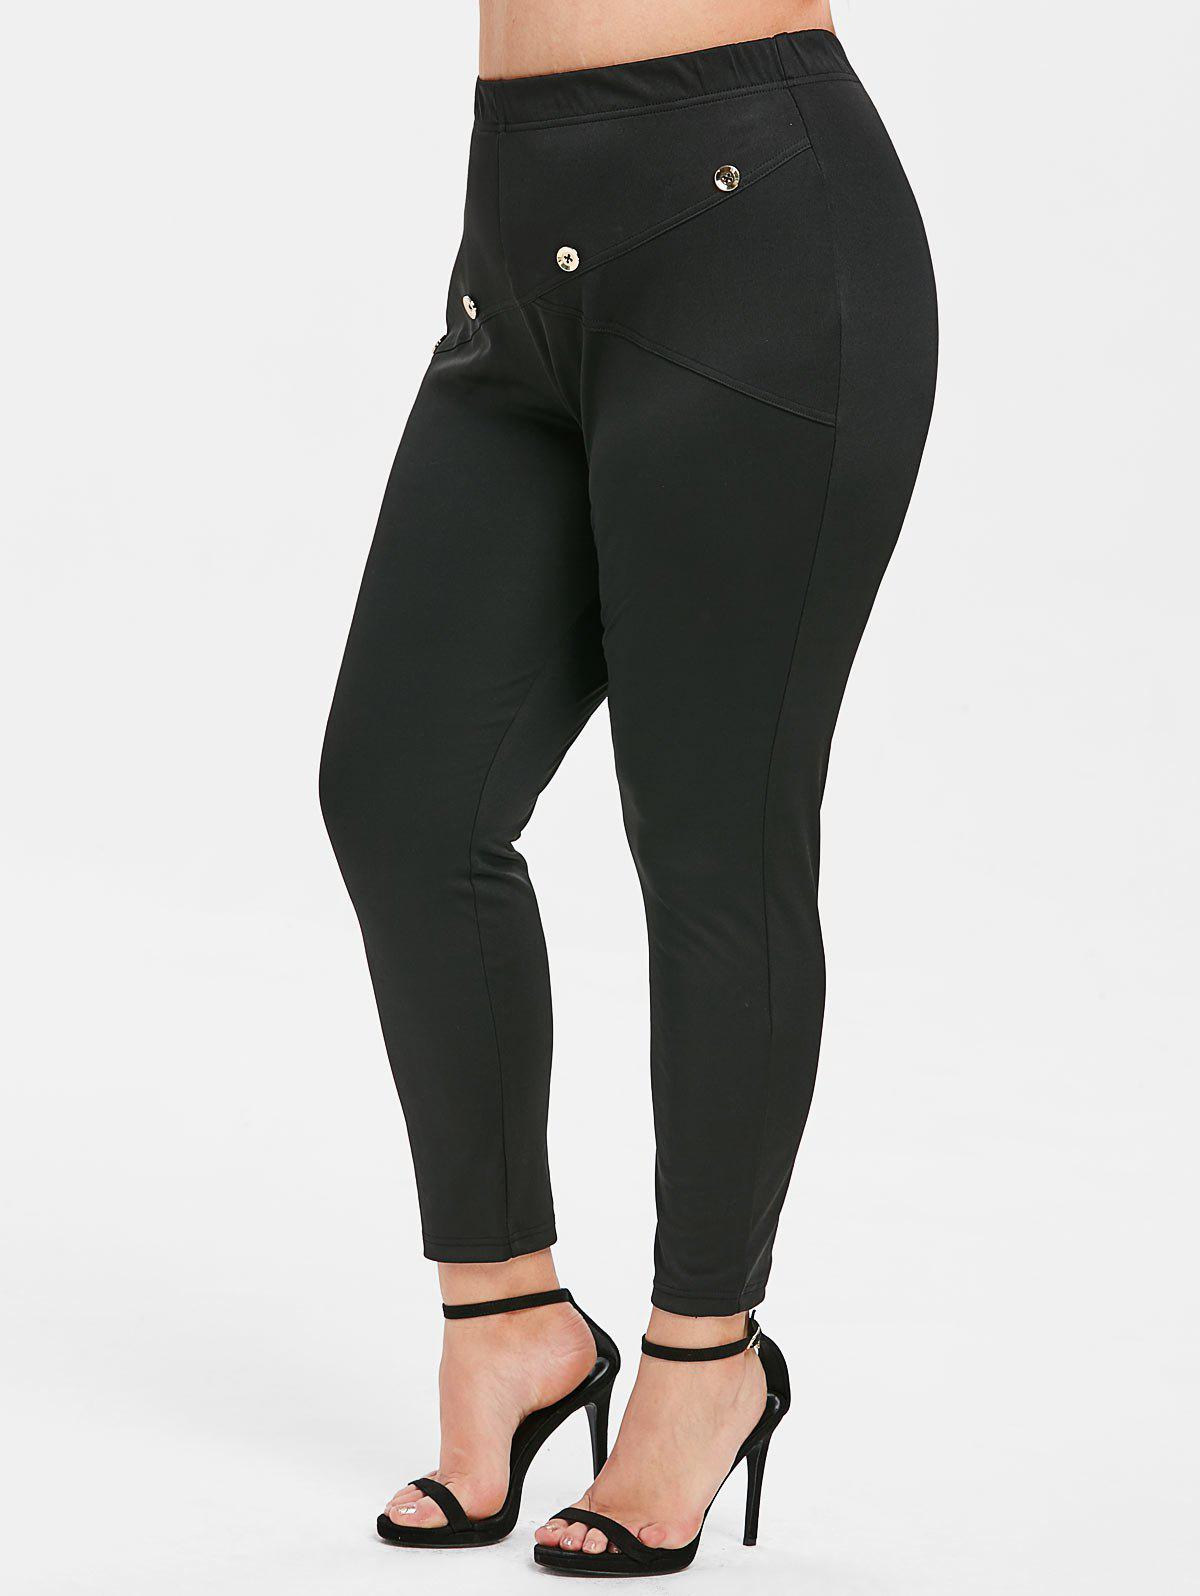 Fancy Rosegal Button Plus Size Leggings